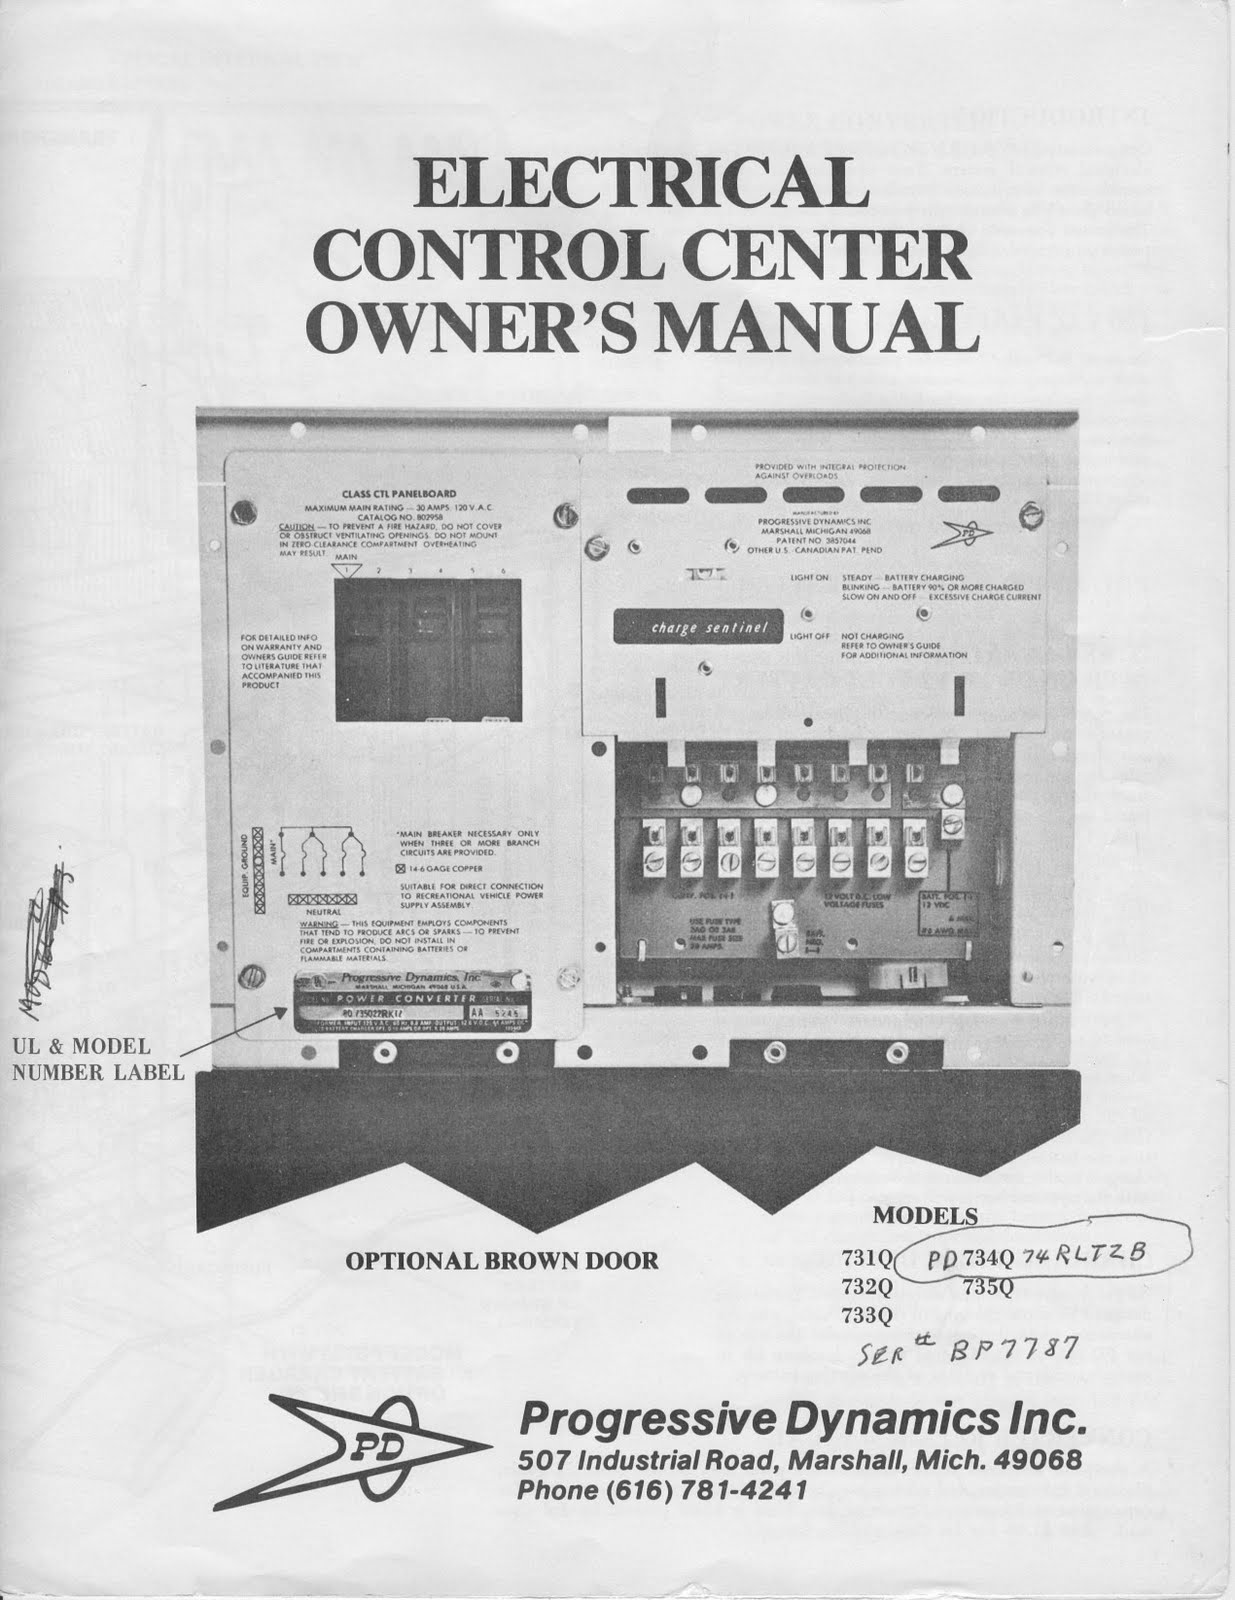 Pace Arrow Motorhomes Electrical Manuals One Word Quickstart 1988 Wiring Diagram 1983 Fleetwood Owners 83 Power Rh 1983fleetwoodpacearrowownersmanuals Blogspot Com Motorhome